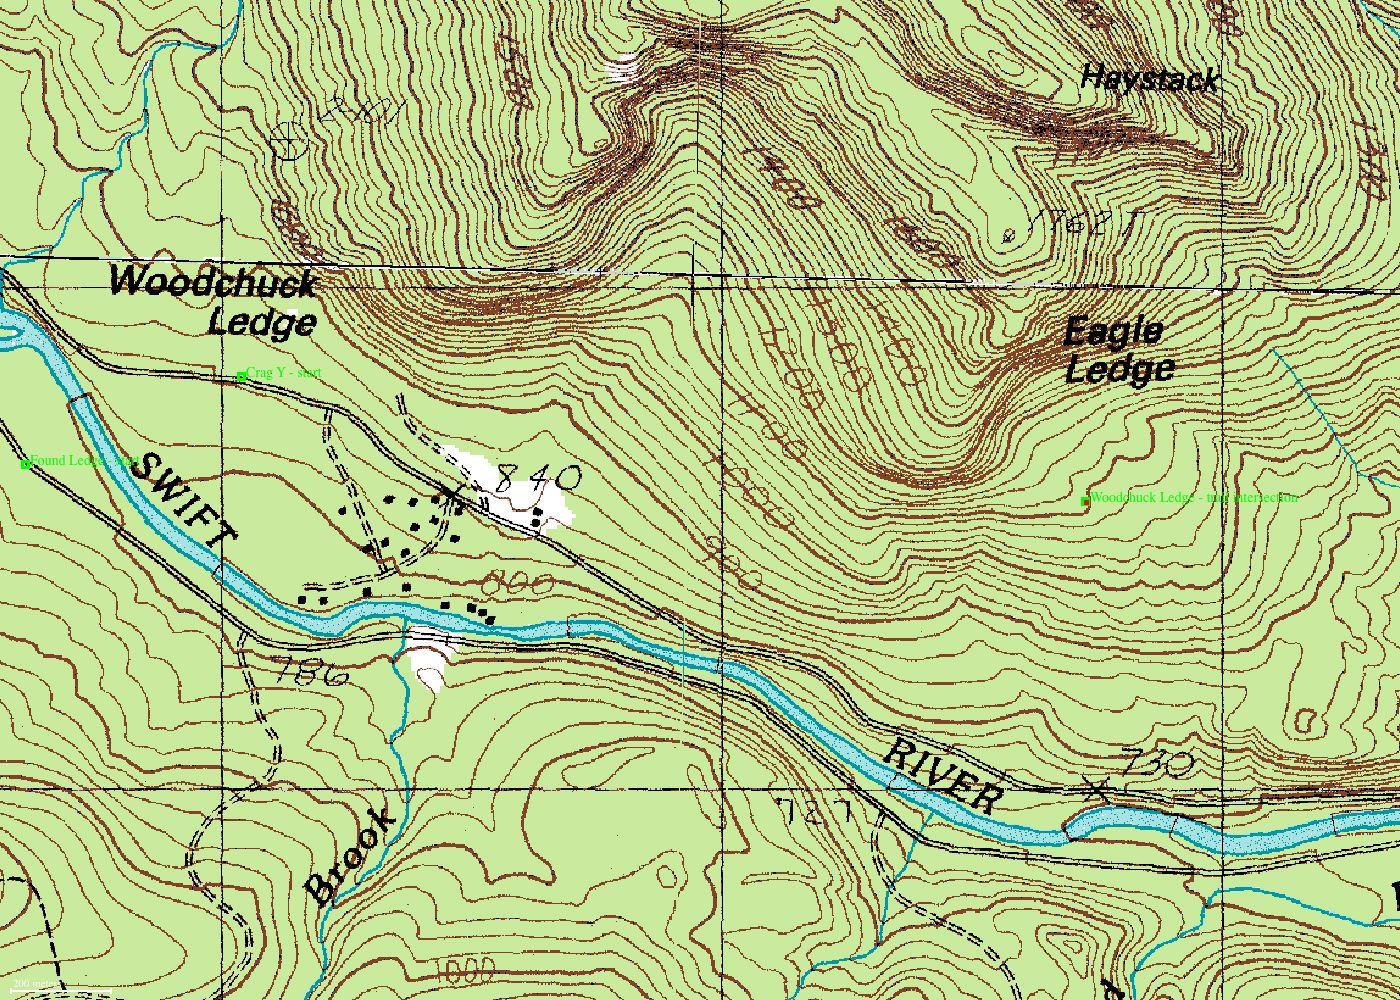 Topographic Map Of New England.Neclimbs The White Mountain Report Current Climbing News For New